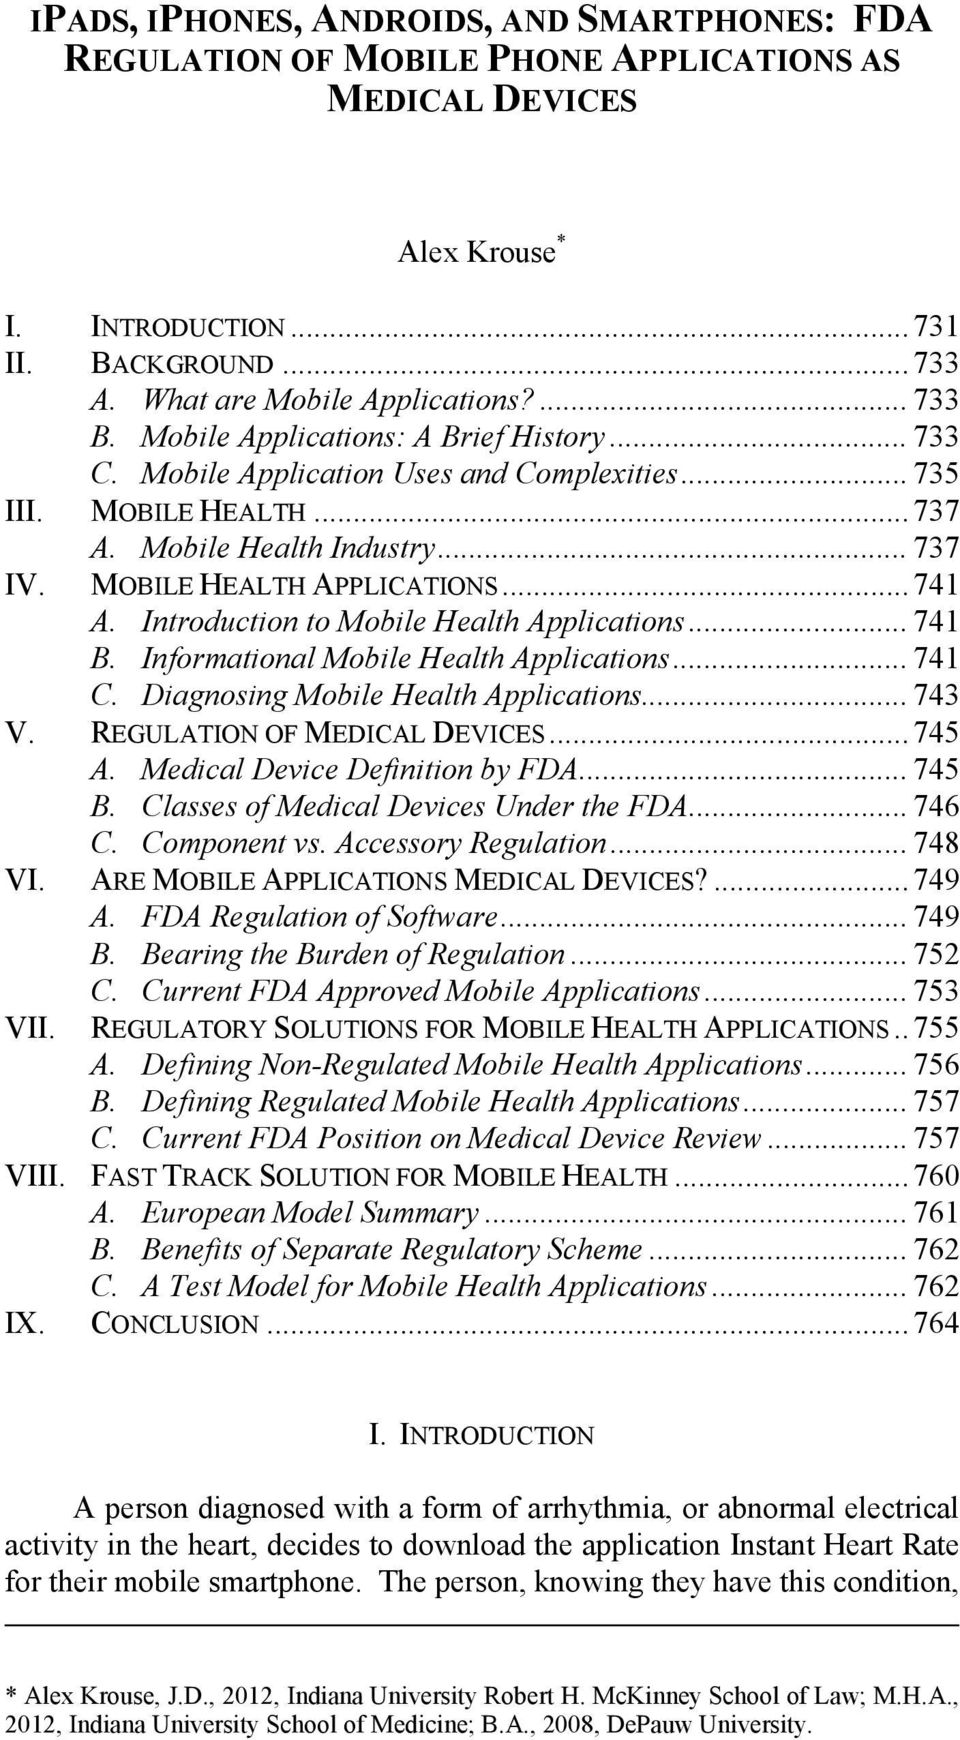 .. 741 A. Introduction to Mobile Health Applications... 741 B. Informational Mobile Health Applications... 741 C. Diagnosing Mobile Health Applications... 743 V. REGULATION OF MEDICAL DEVICES... 745 A.